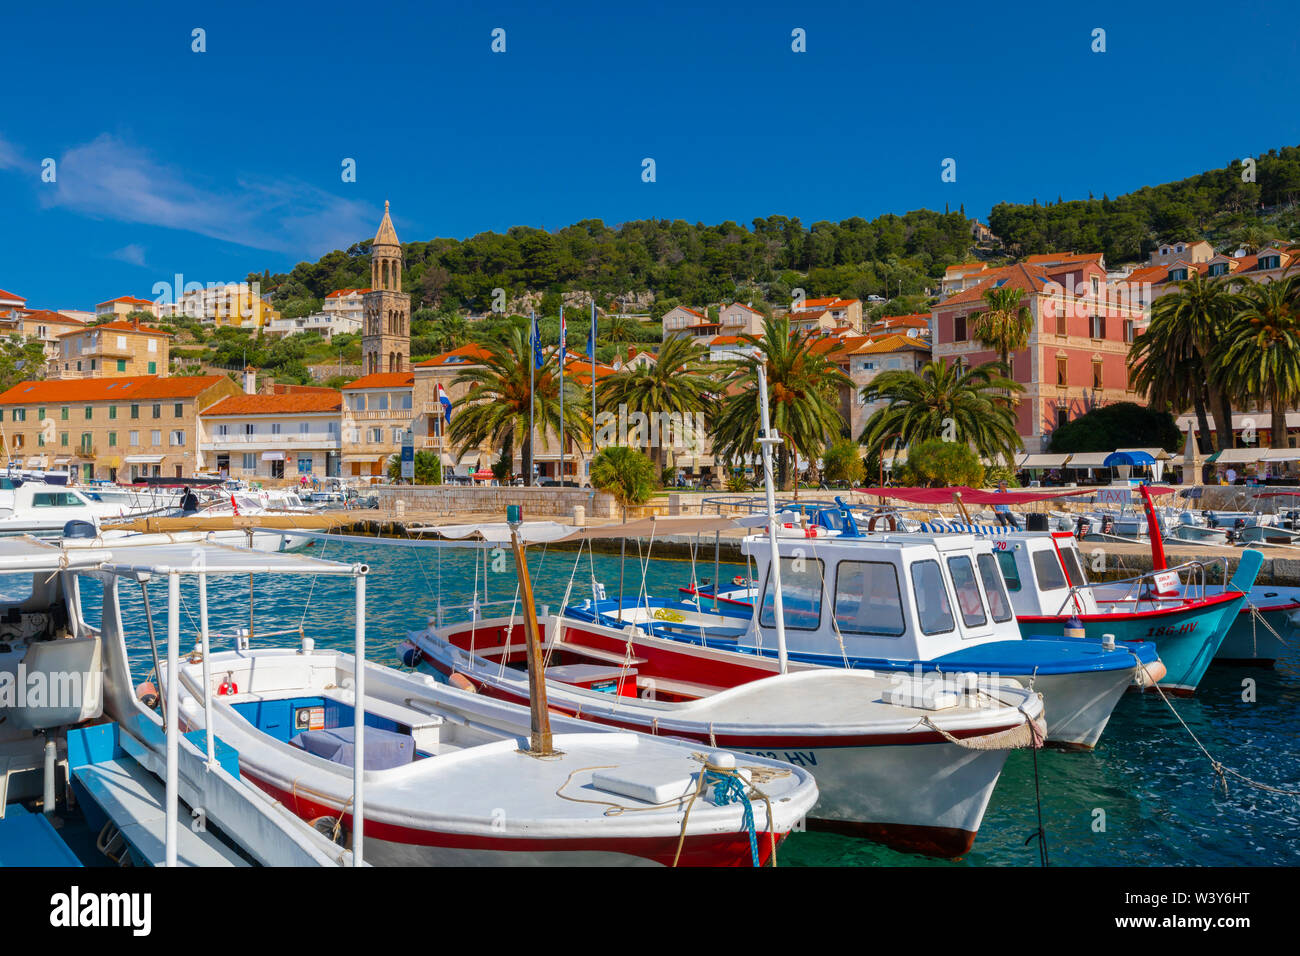 Hvar Town and Harbour, Hvar, Dalmatian Coast, Croatia, Europe - Stock Image